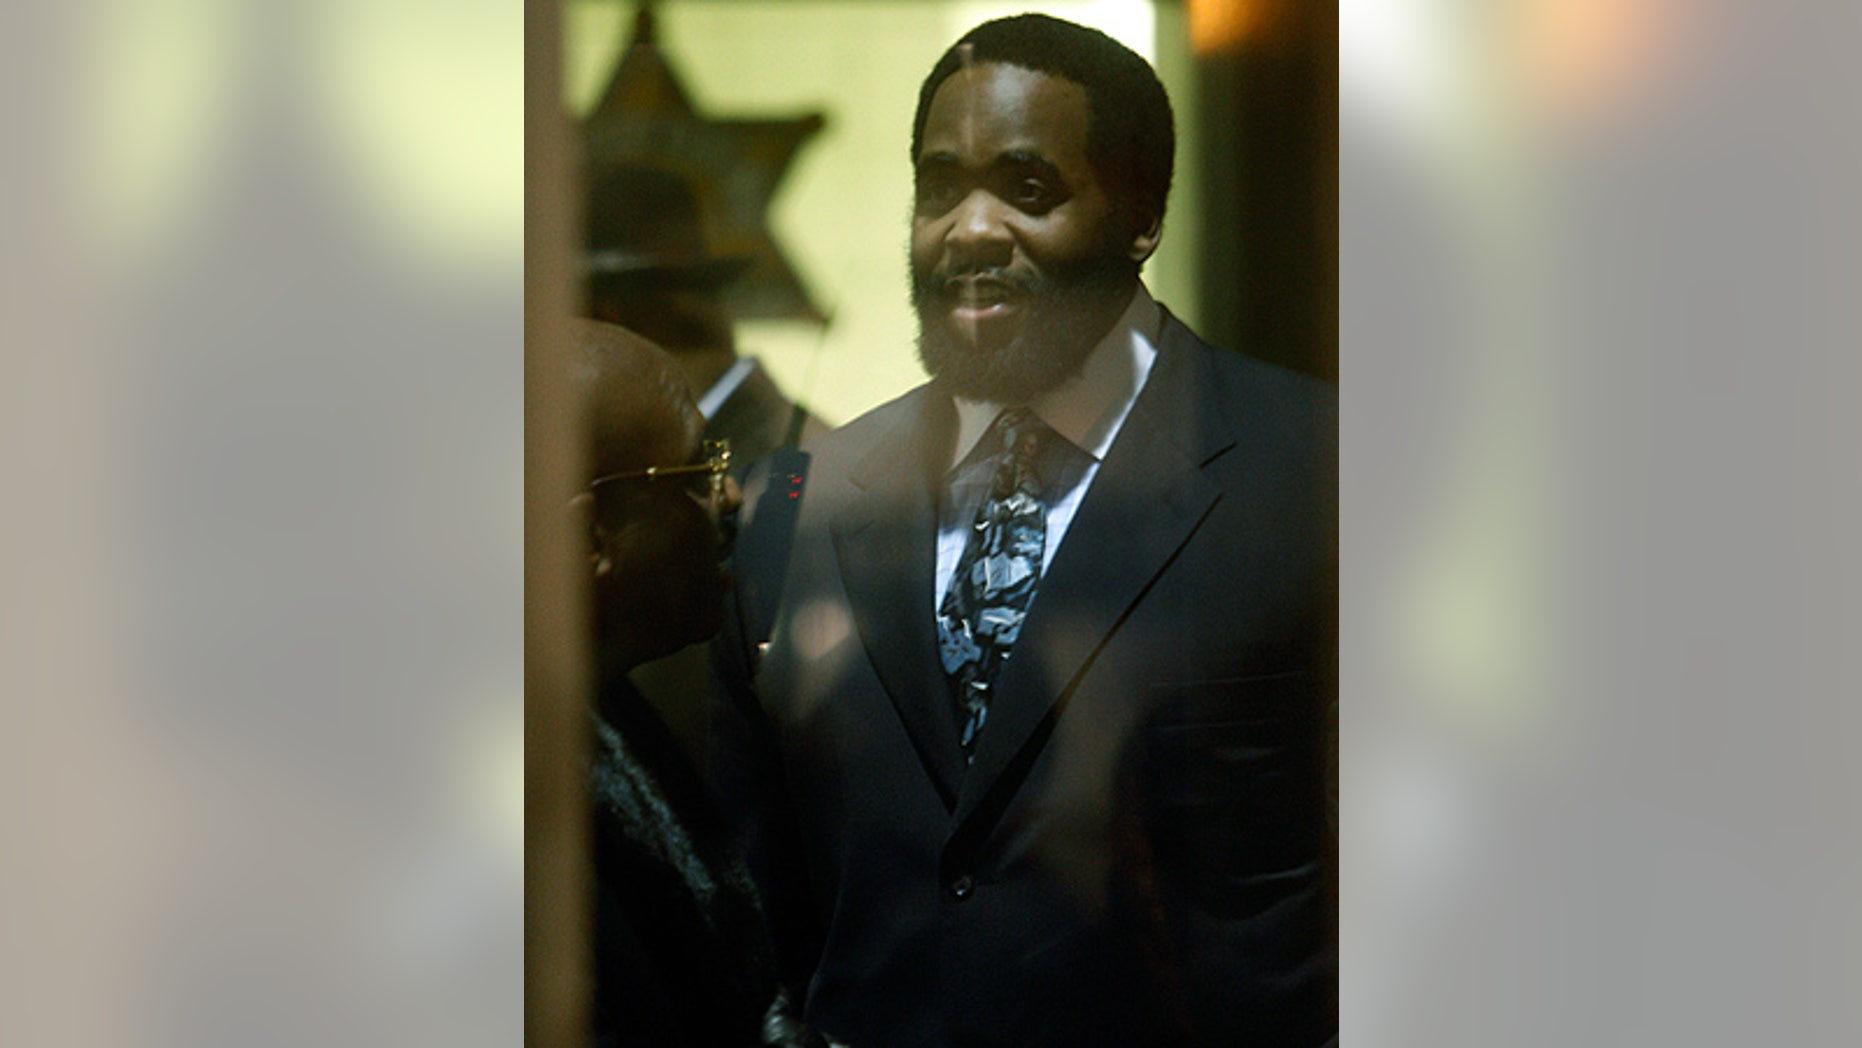 Feb. 3: Ex-Detroit Mayor Kwame Kilpatrick is seen in the Wayne County Andrew C. Baird Detention Facility in Detroit.